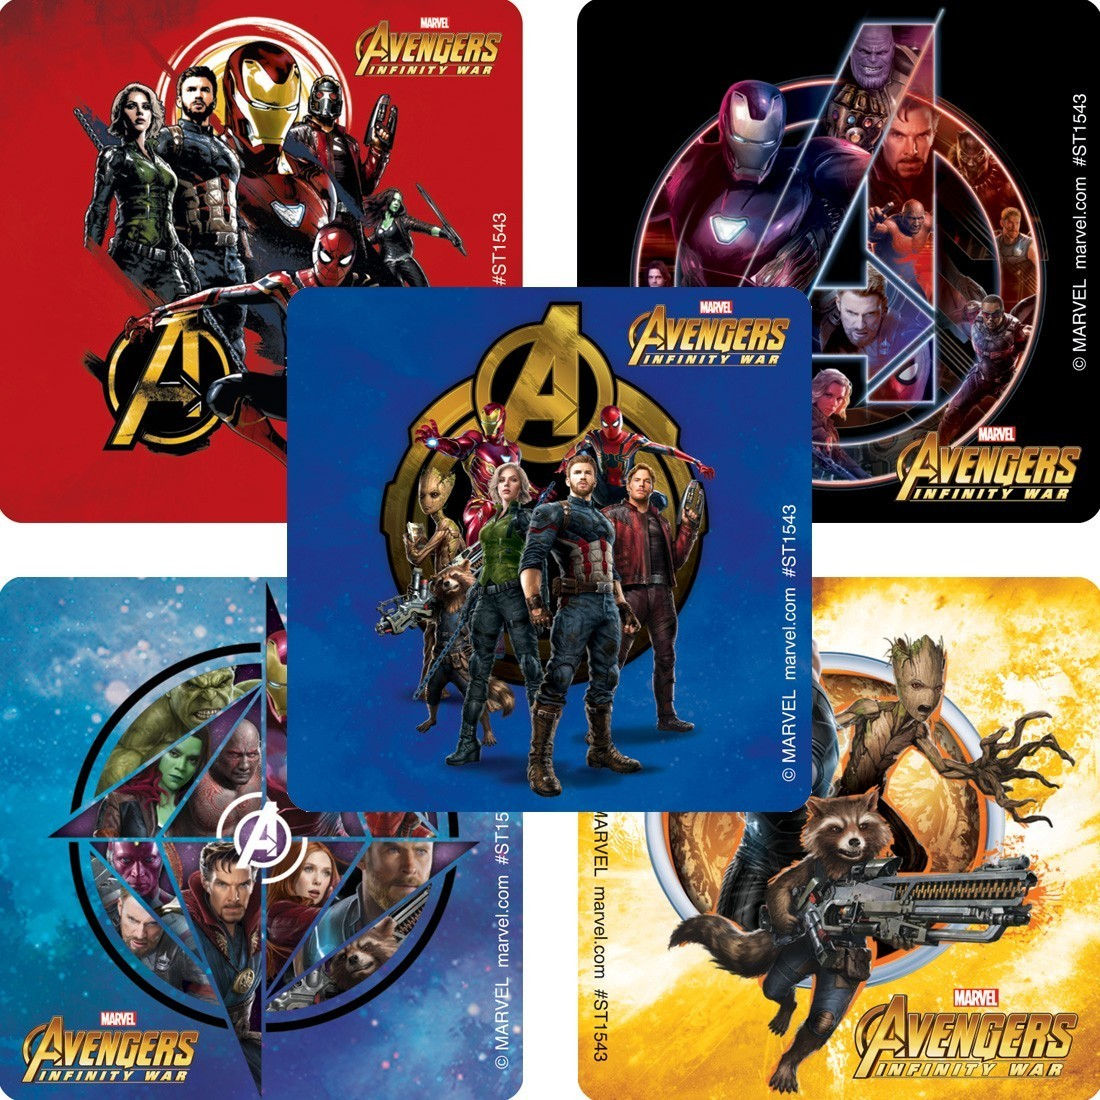 Avengers: Infinity War Stickers [image]